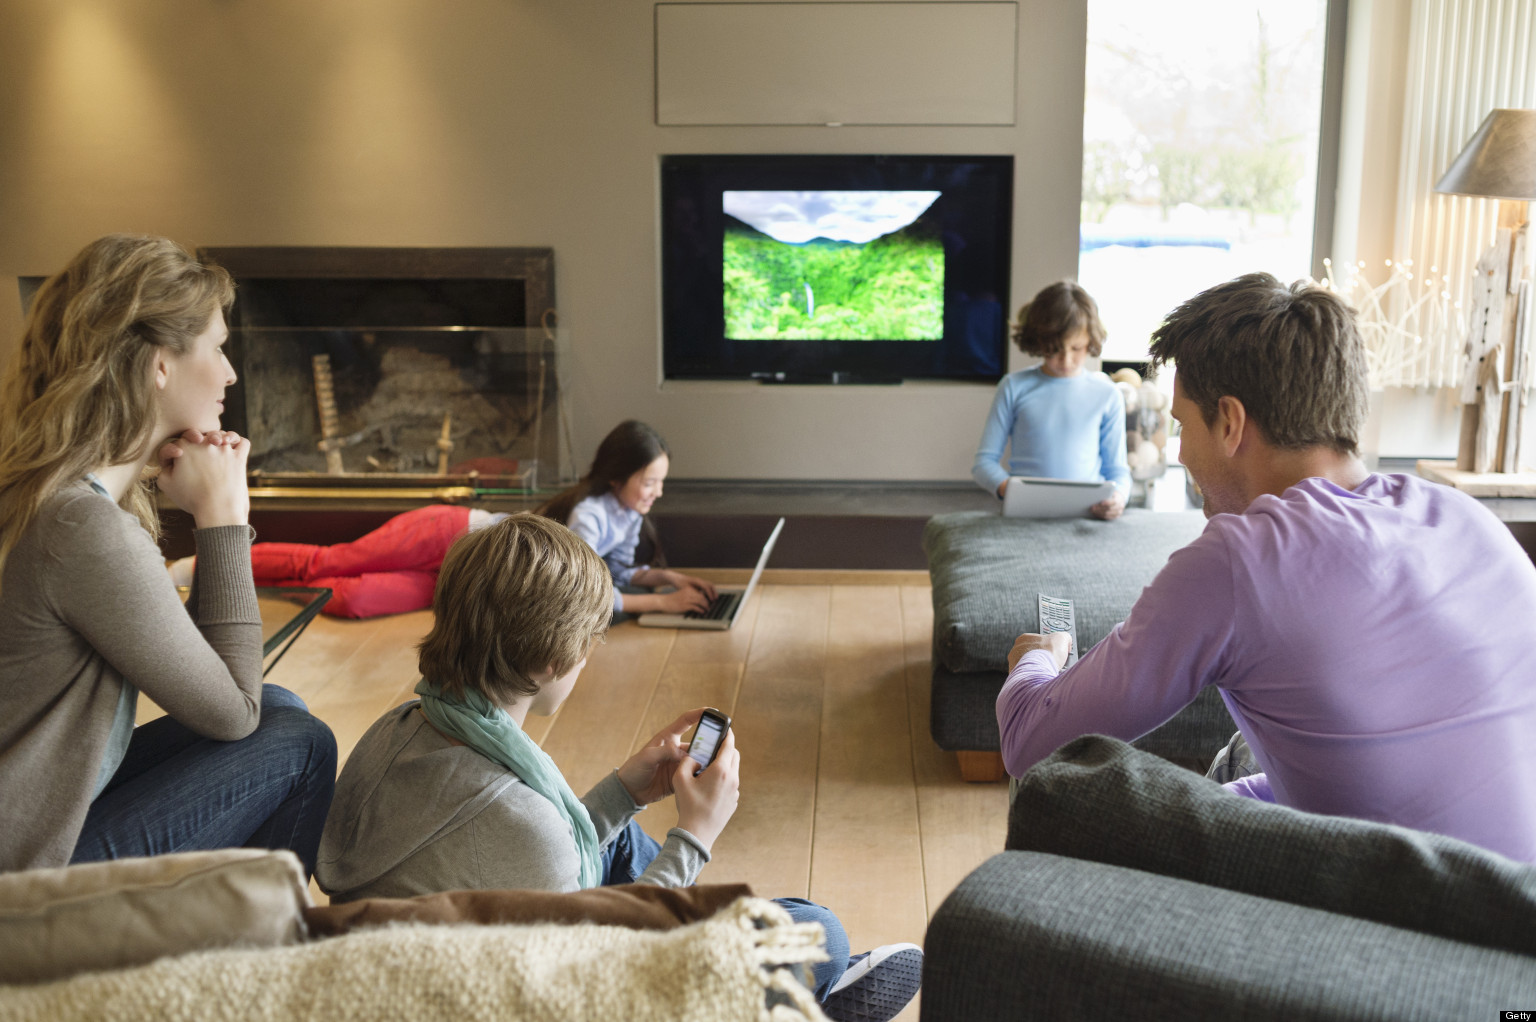 Multi screen viewing canadians increasingly using second for The living room channel 10 audience